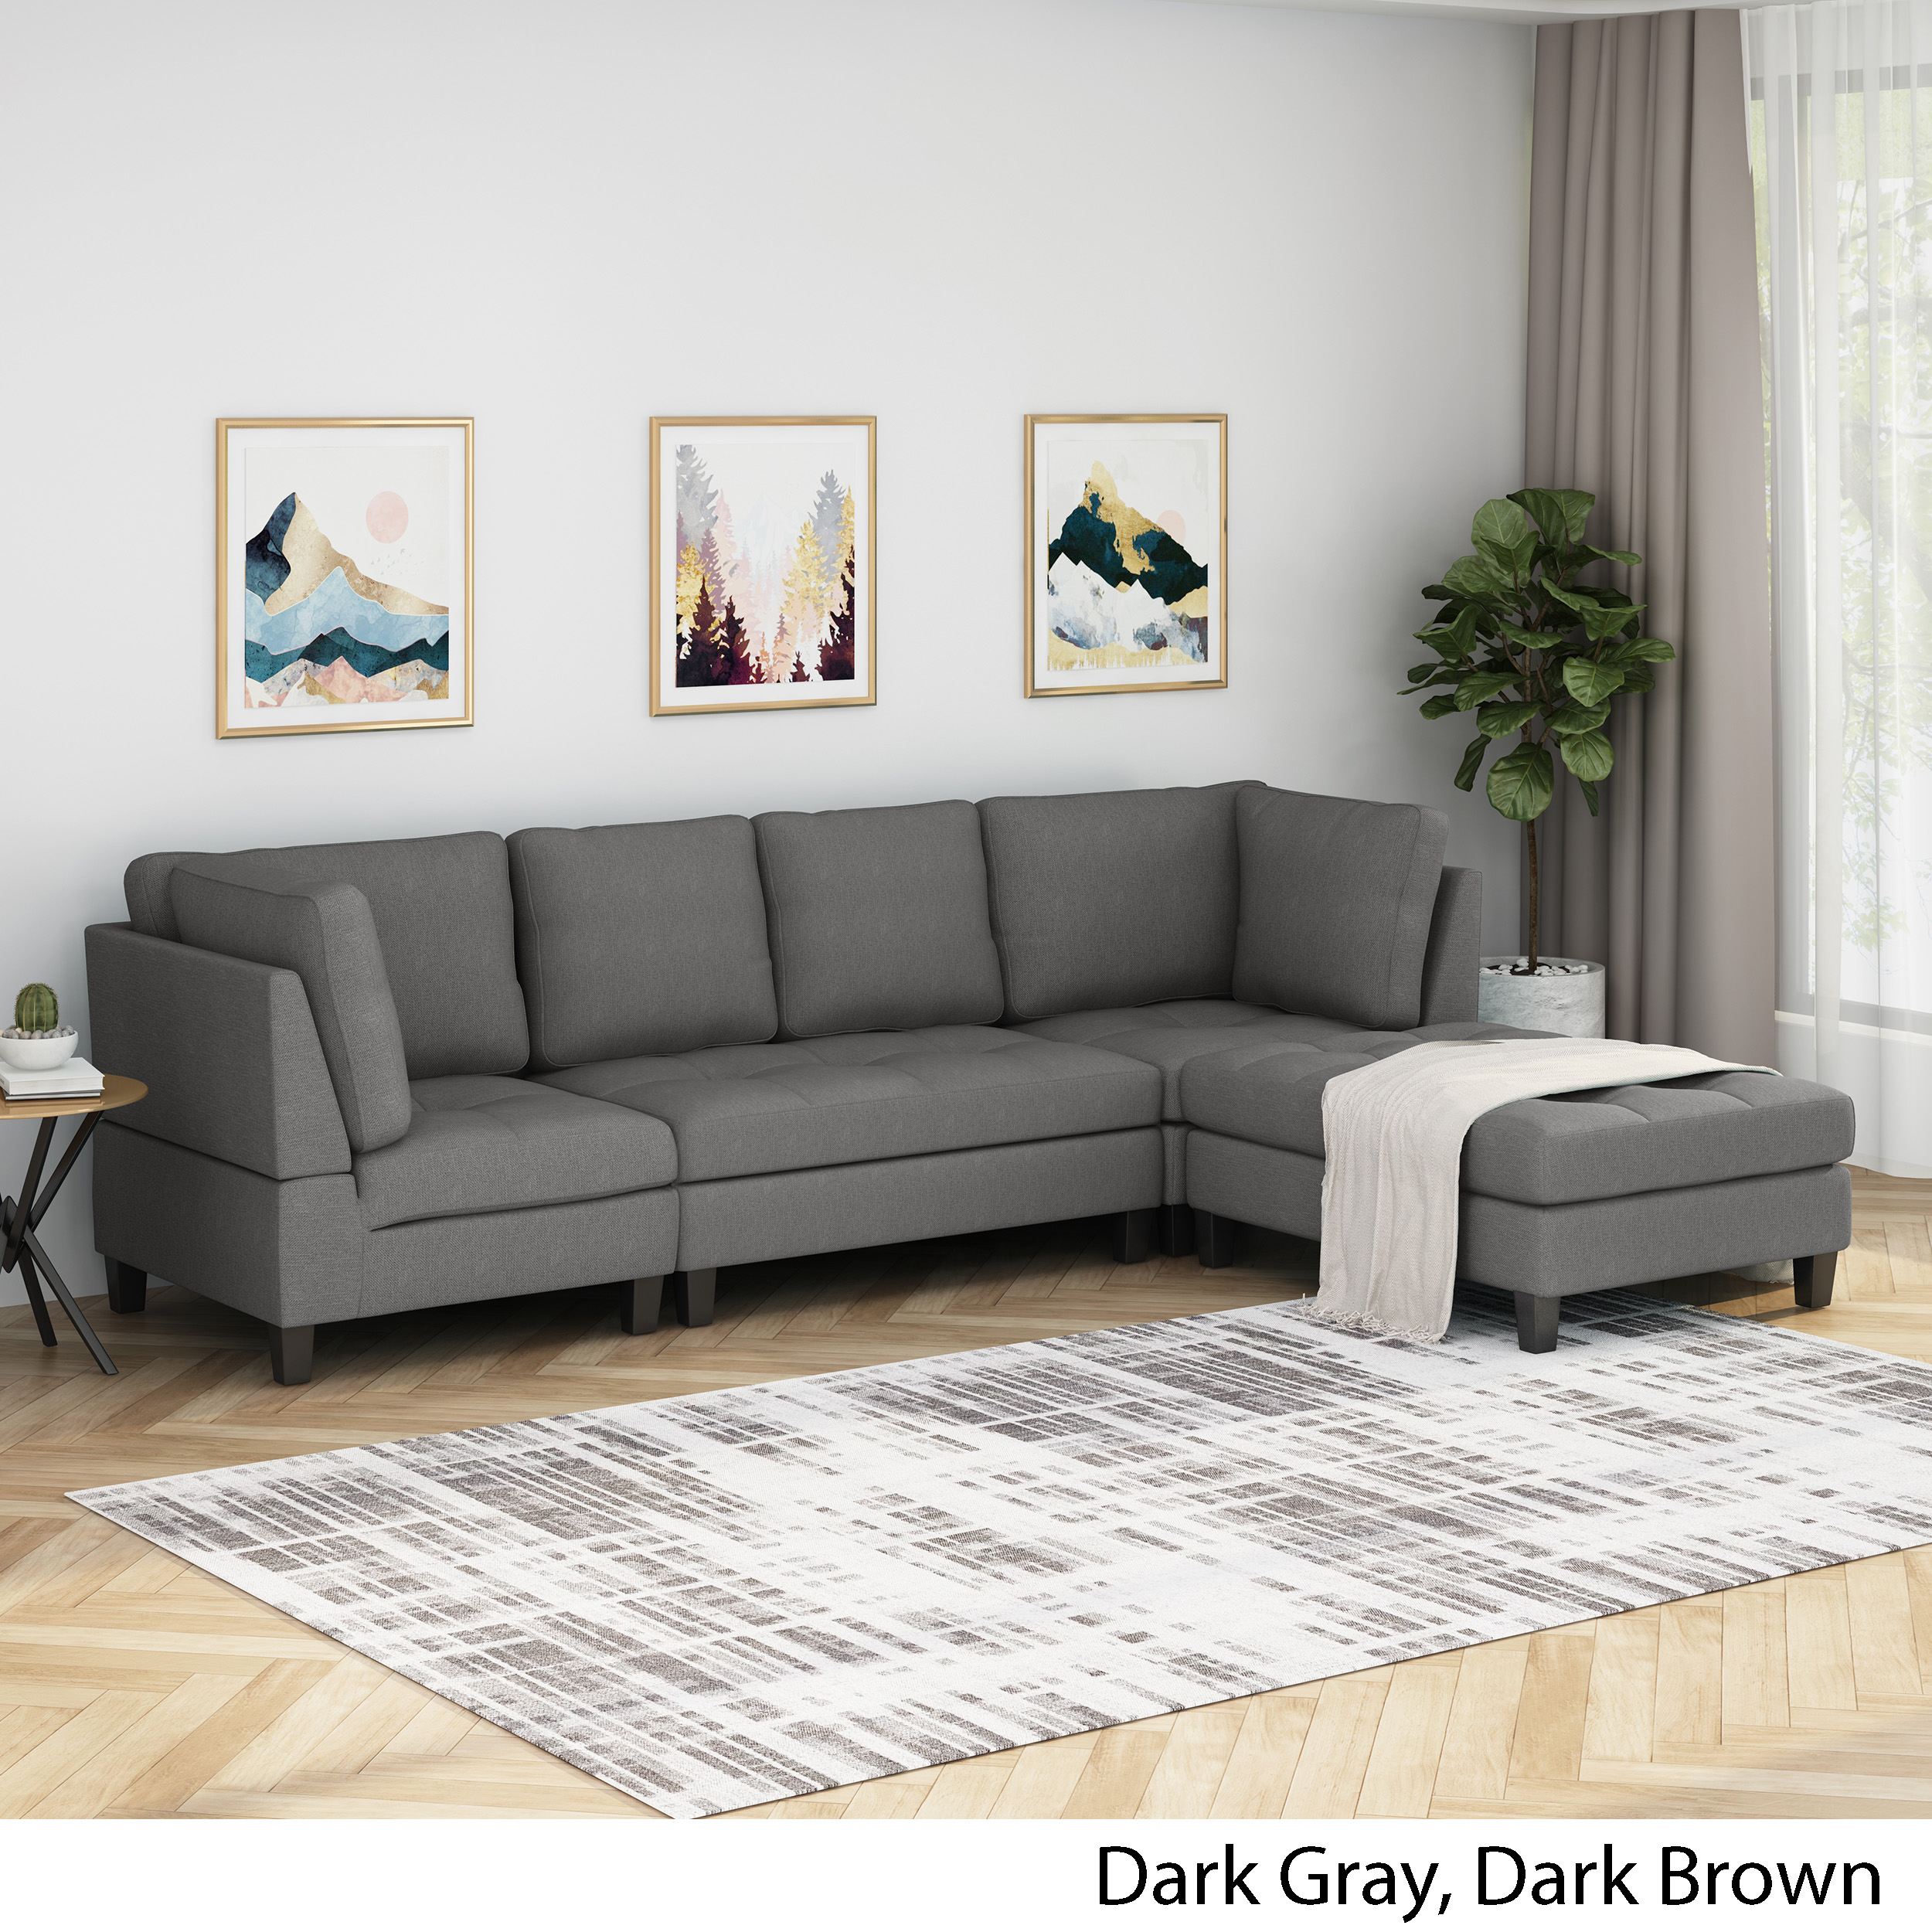 Details About Daylon Contemporary Fabric Sectional Sofa With Ottoman